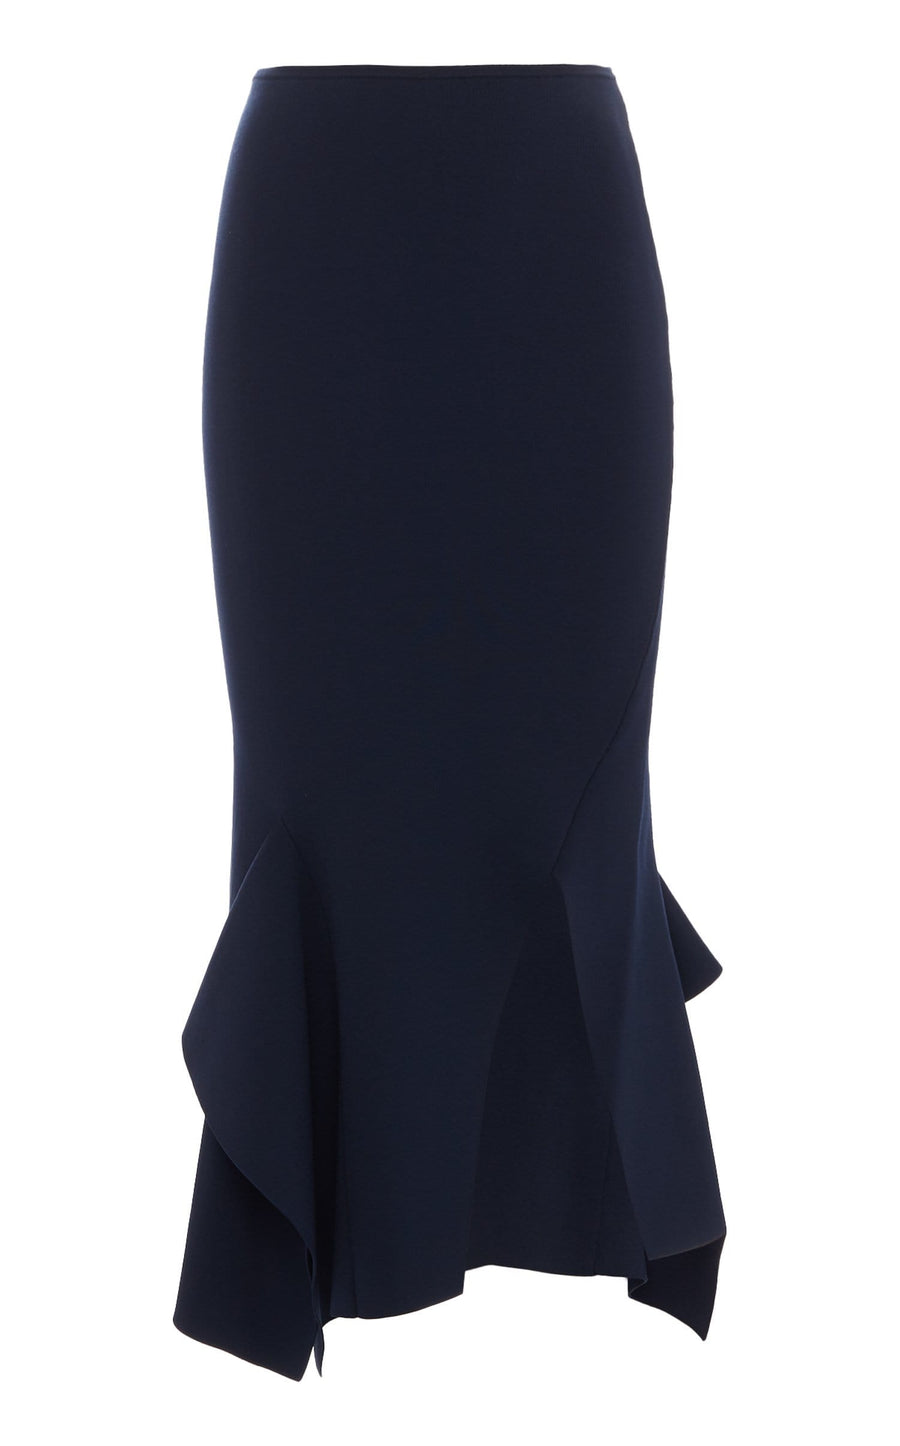 Lucca Skirt In Navy from Roland Mouret